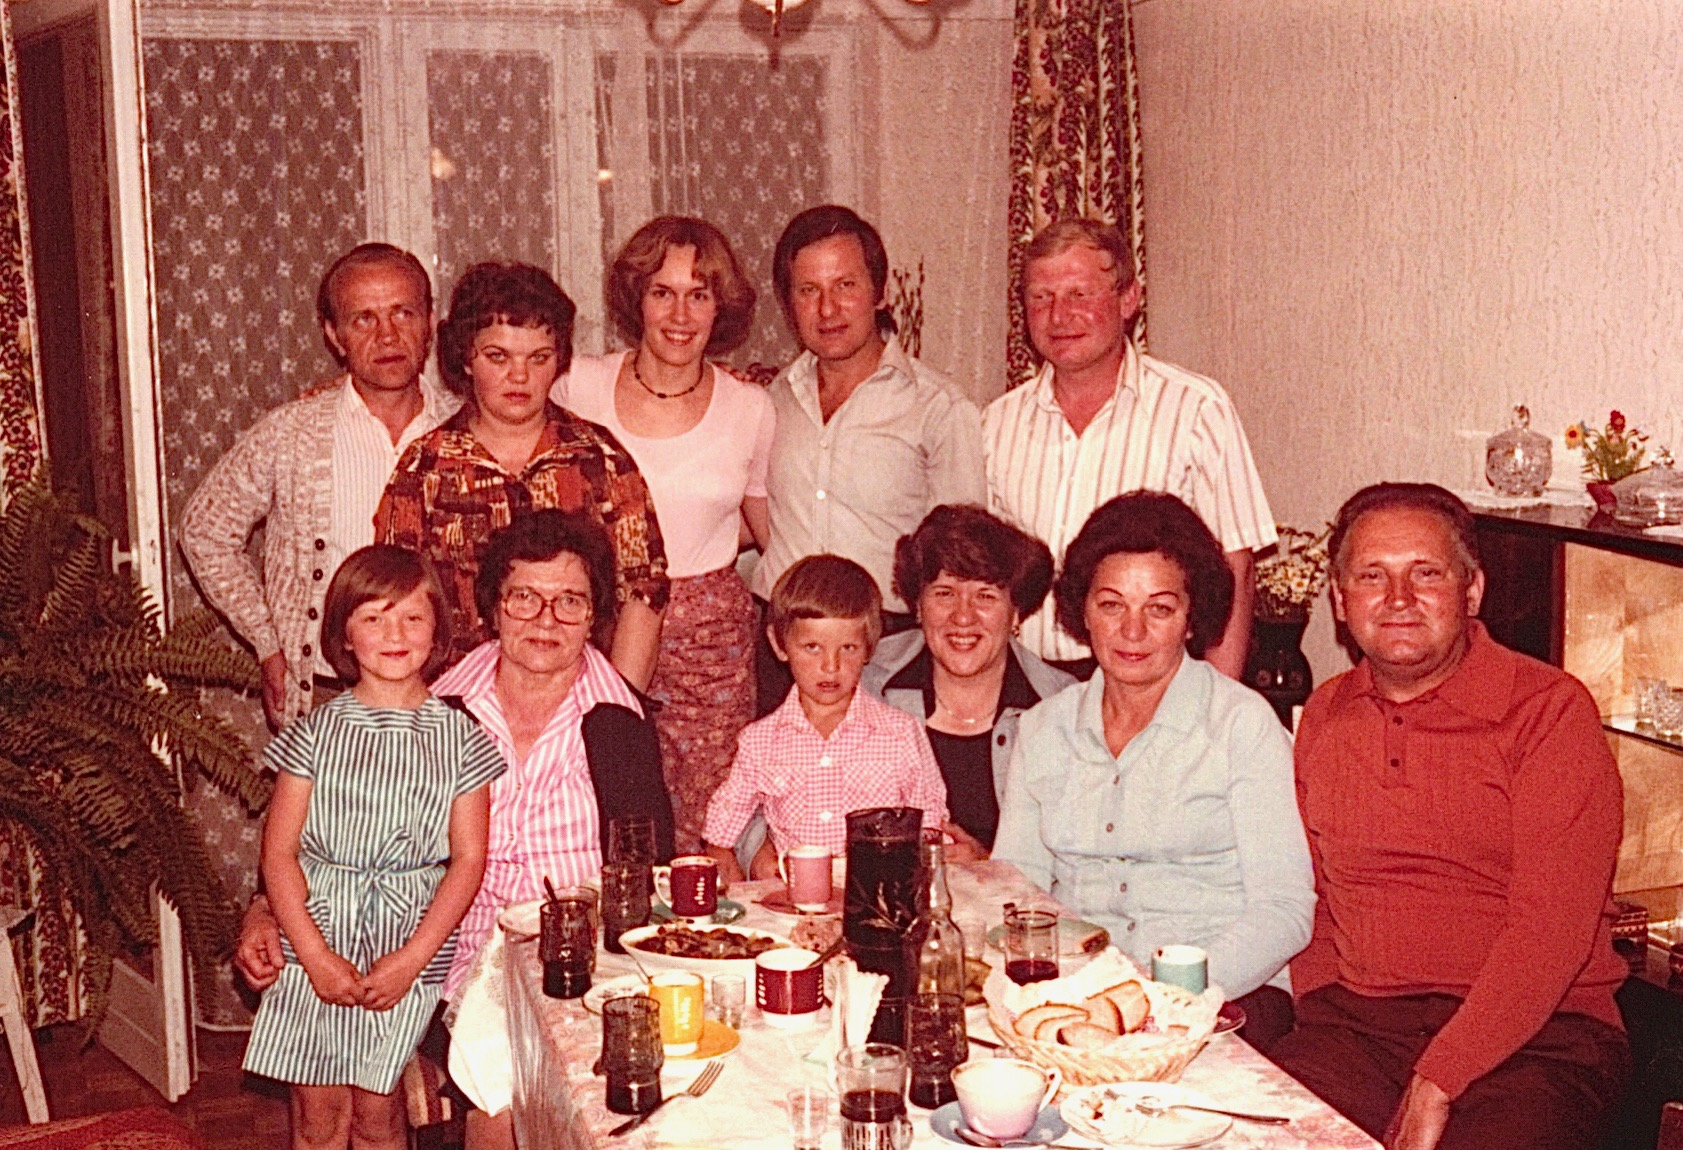 Inside Stanley Bogdan's apartment in Mielec   Back: Neighbor, Halina (Stanley's wife), Lorraine Gudas, Stanley Bogden (Walter's son), Genek   front: Margaret, Stanley's daughter, Mayme, Adam, Stanely's son, Eleanor, and Halina's (Stanley's wife) parents